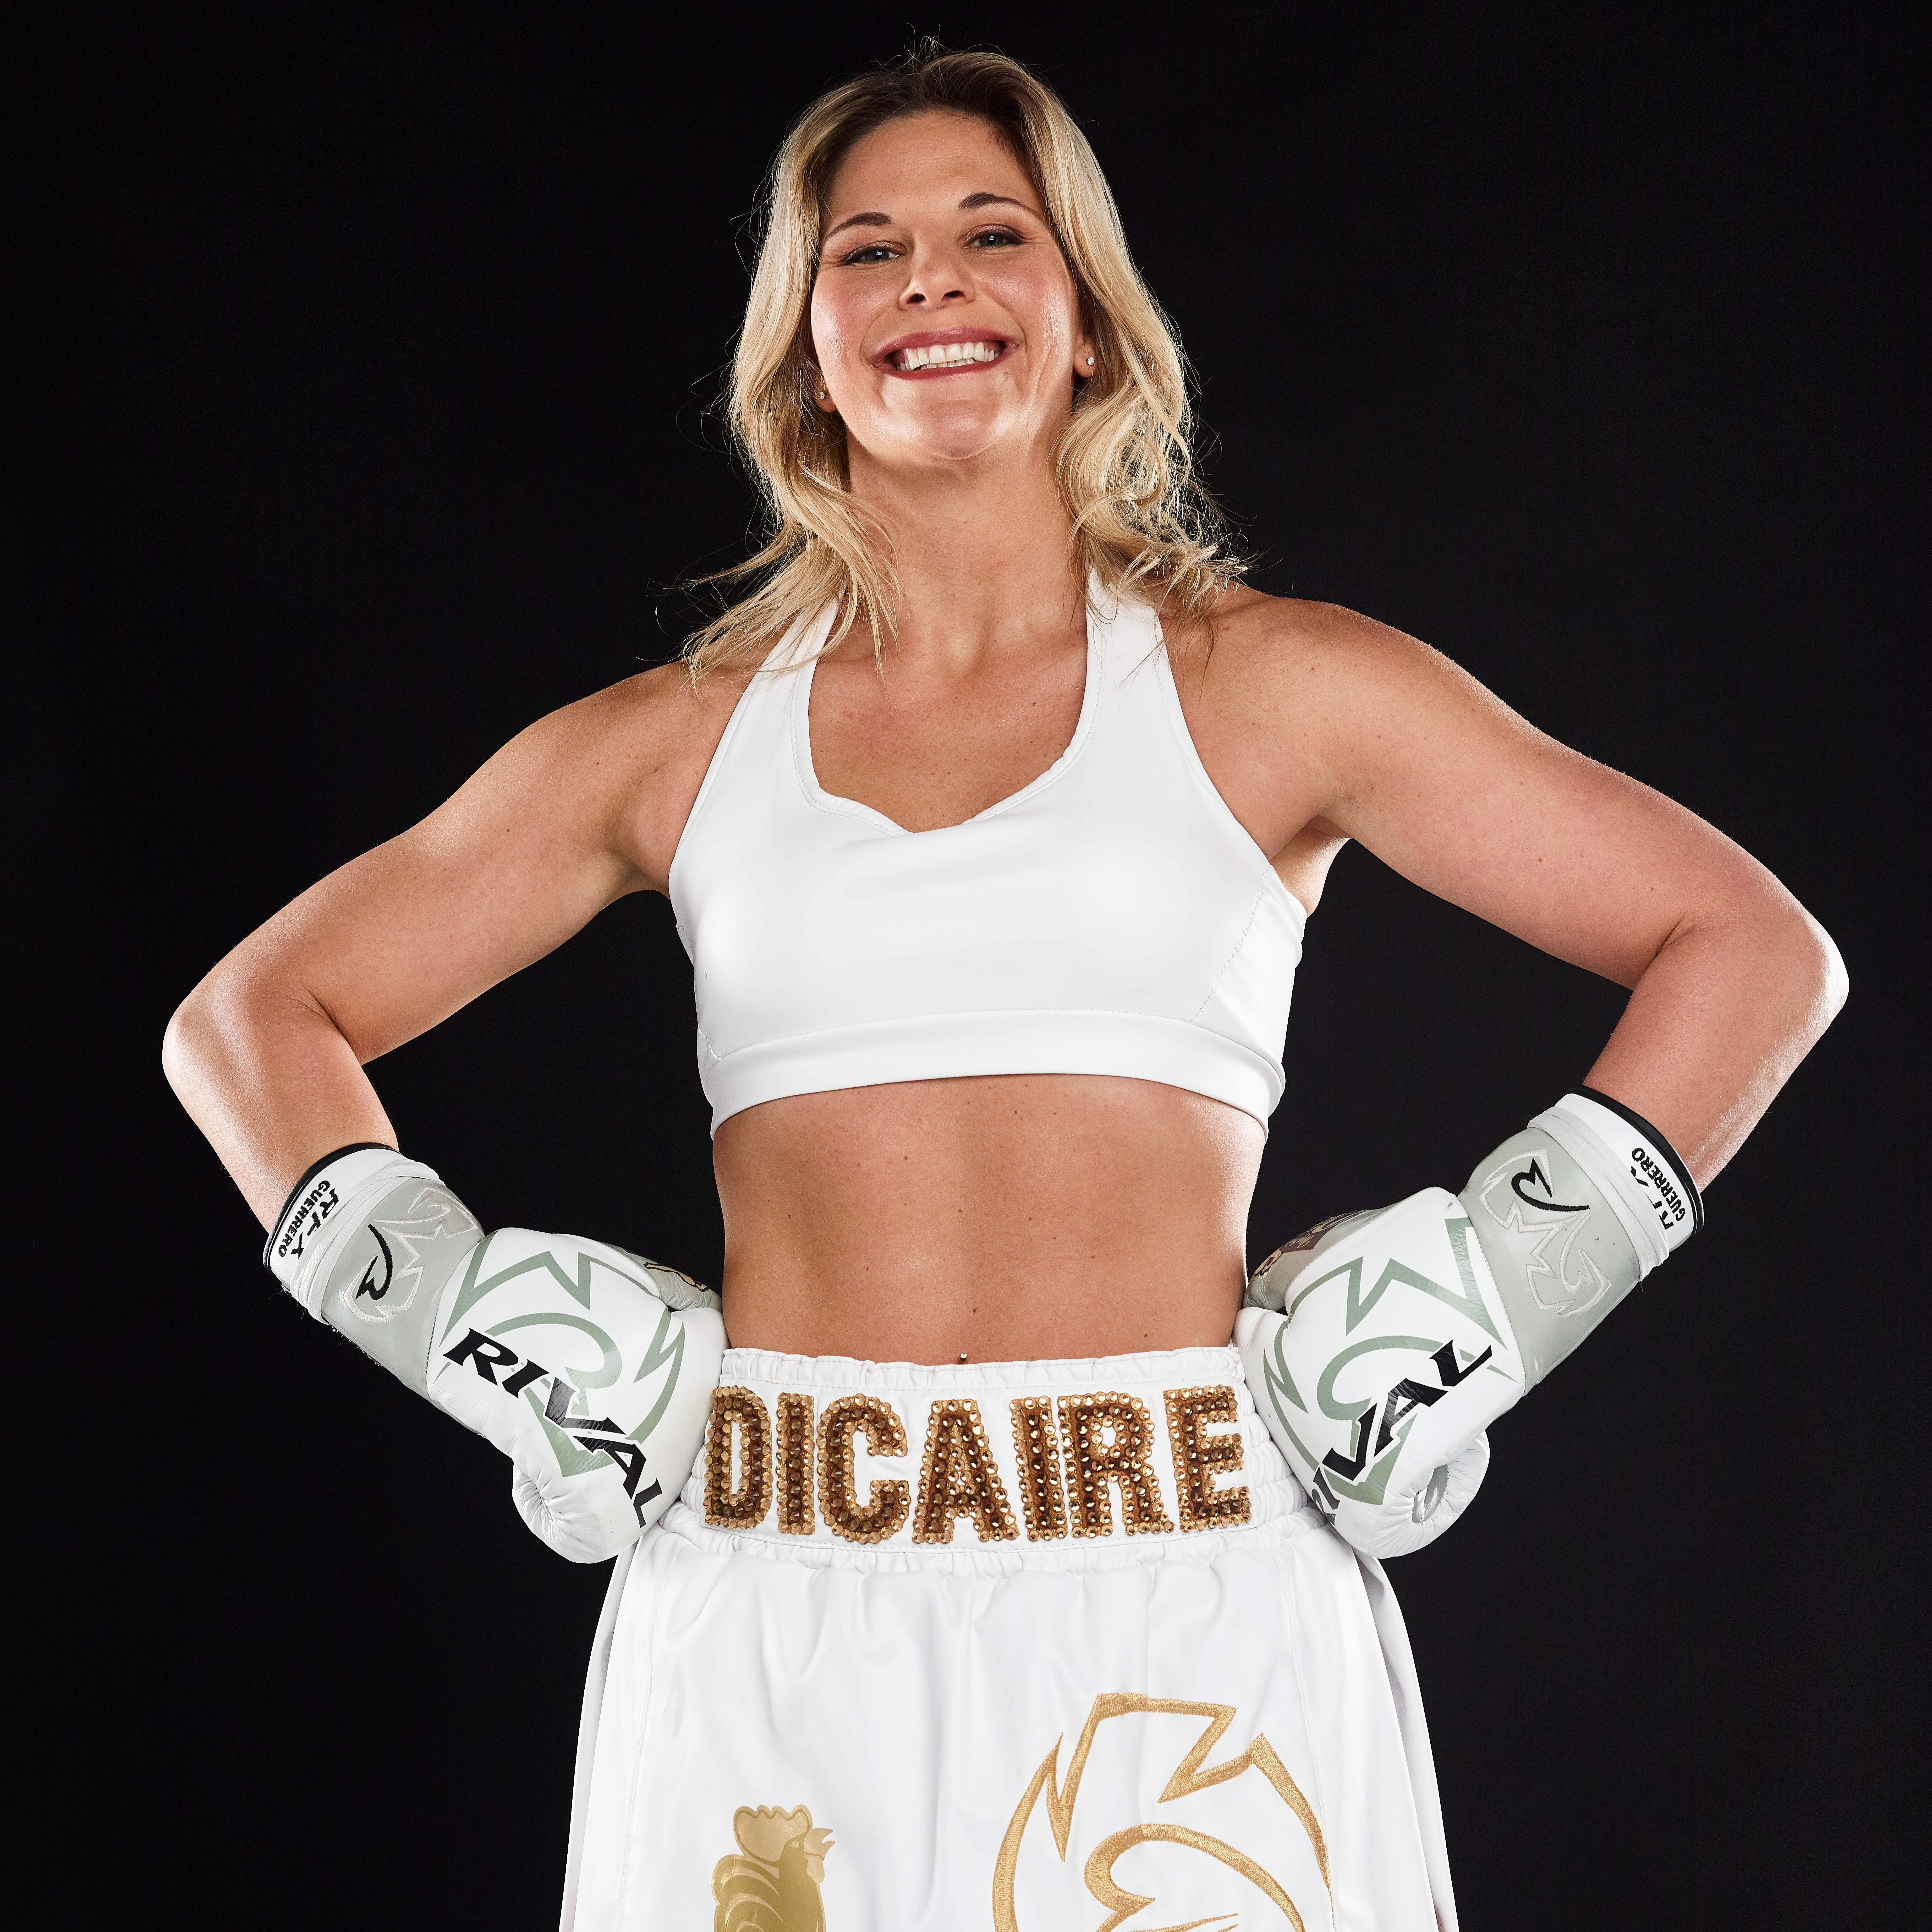 Marie-Eve Dicaire